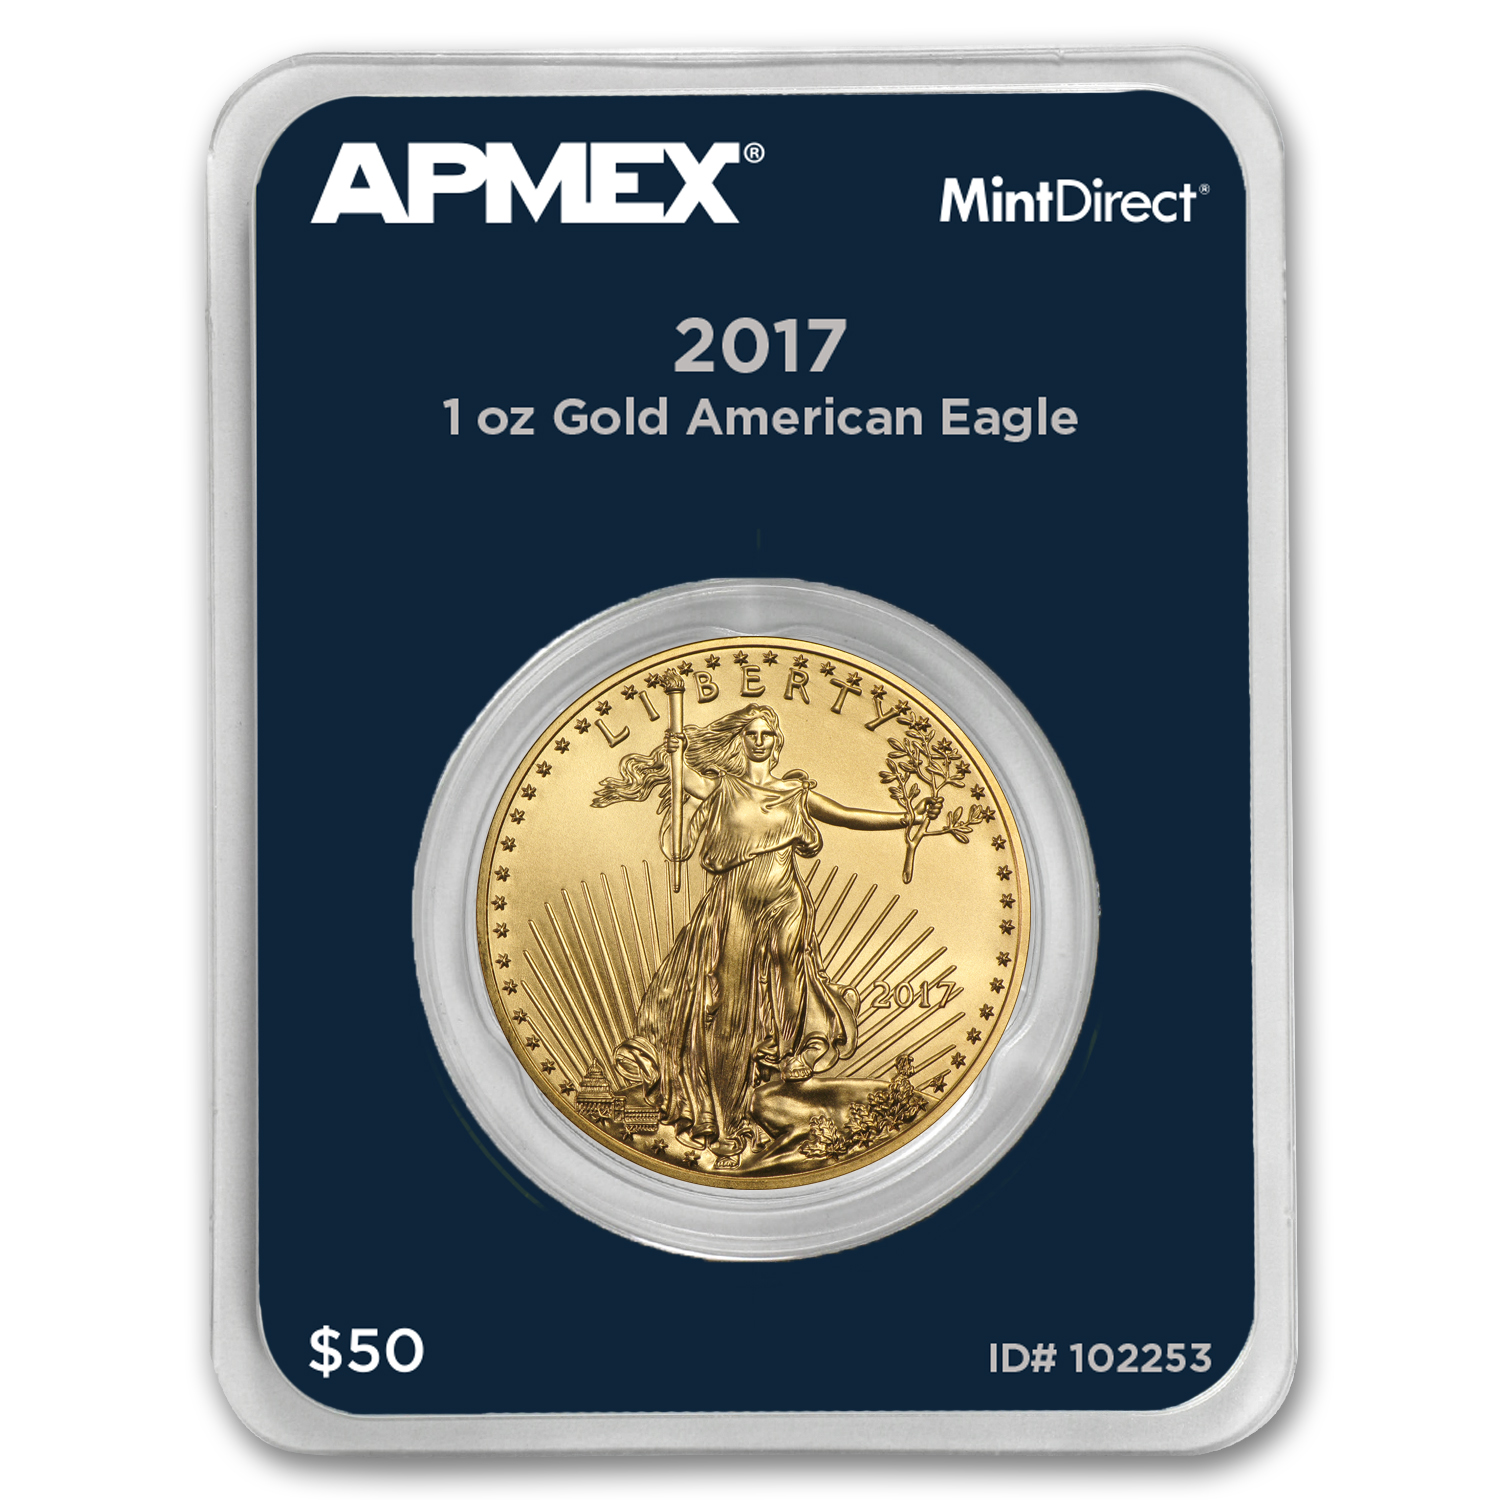 2017 1 oz Gold American Eagle (MintDirect® Single)